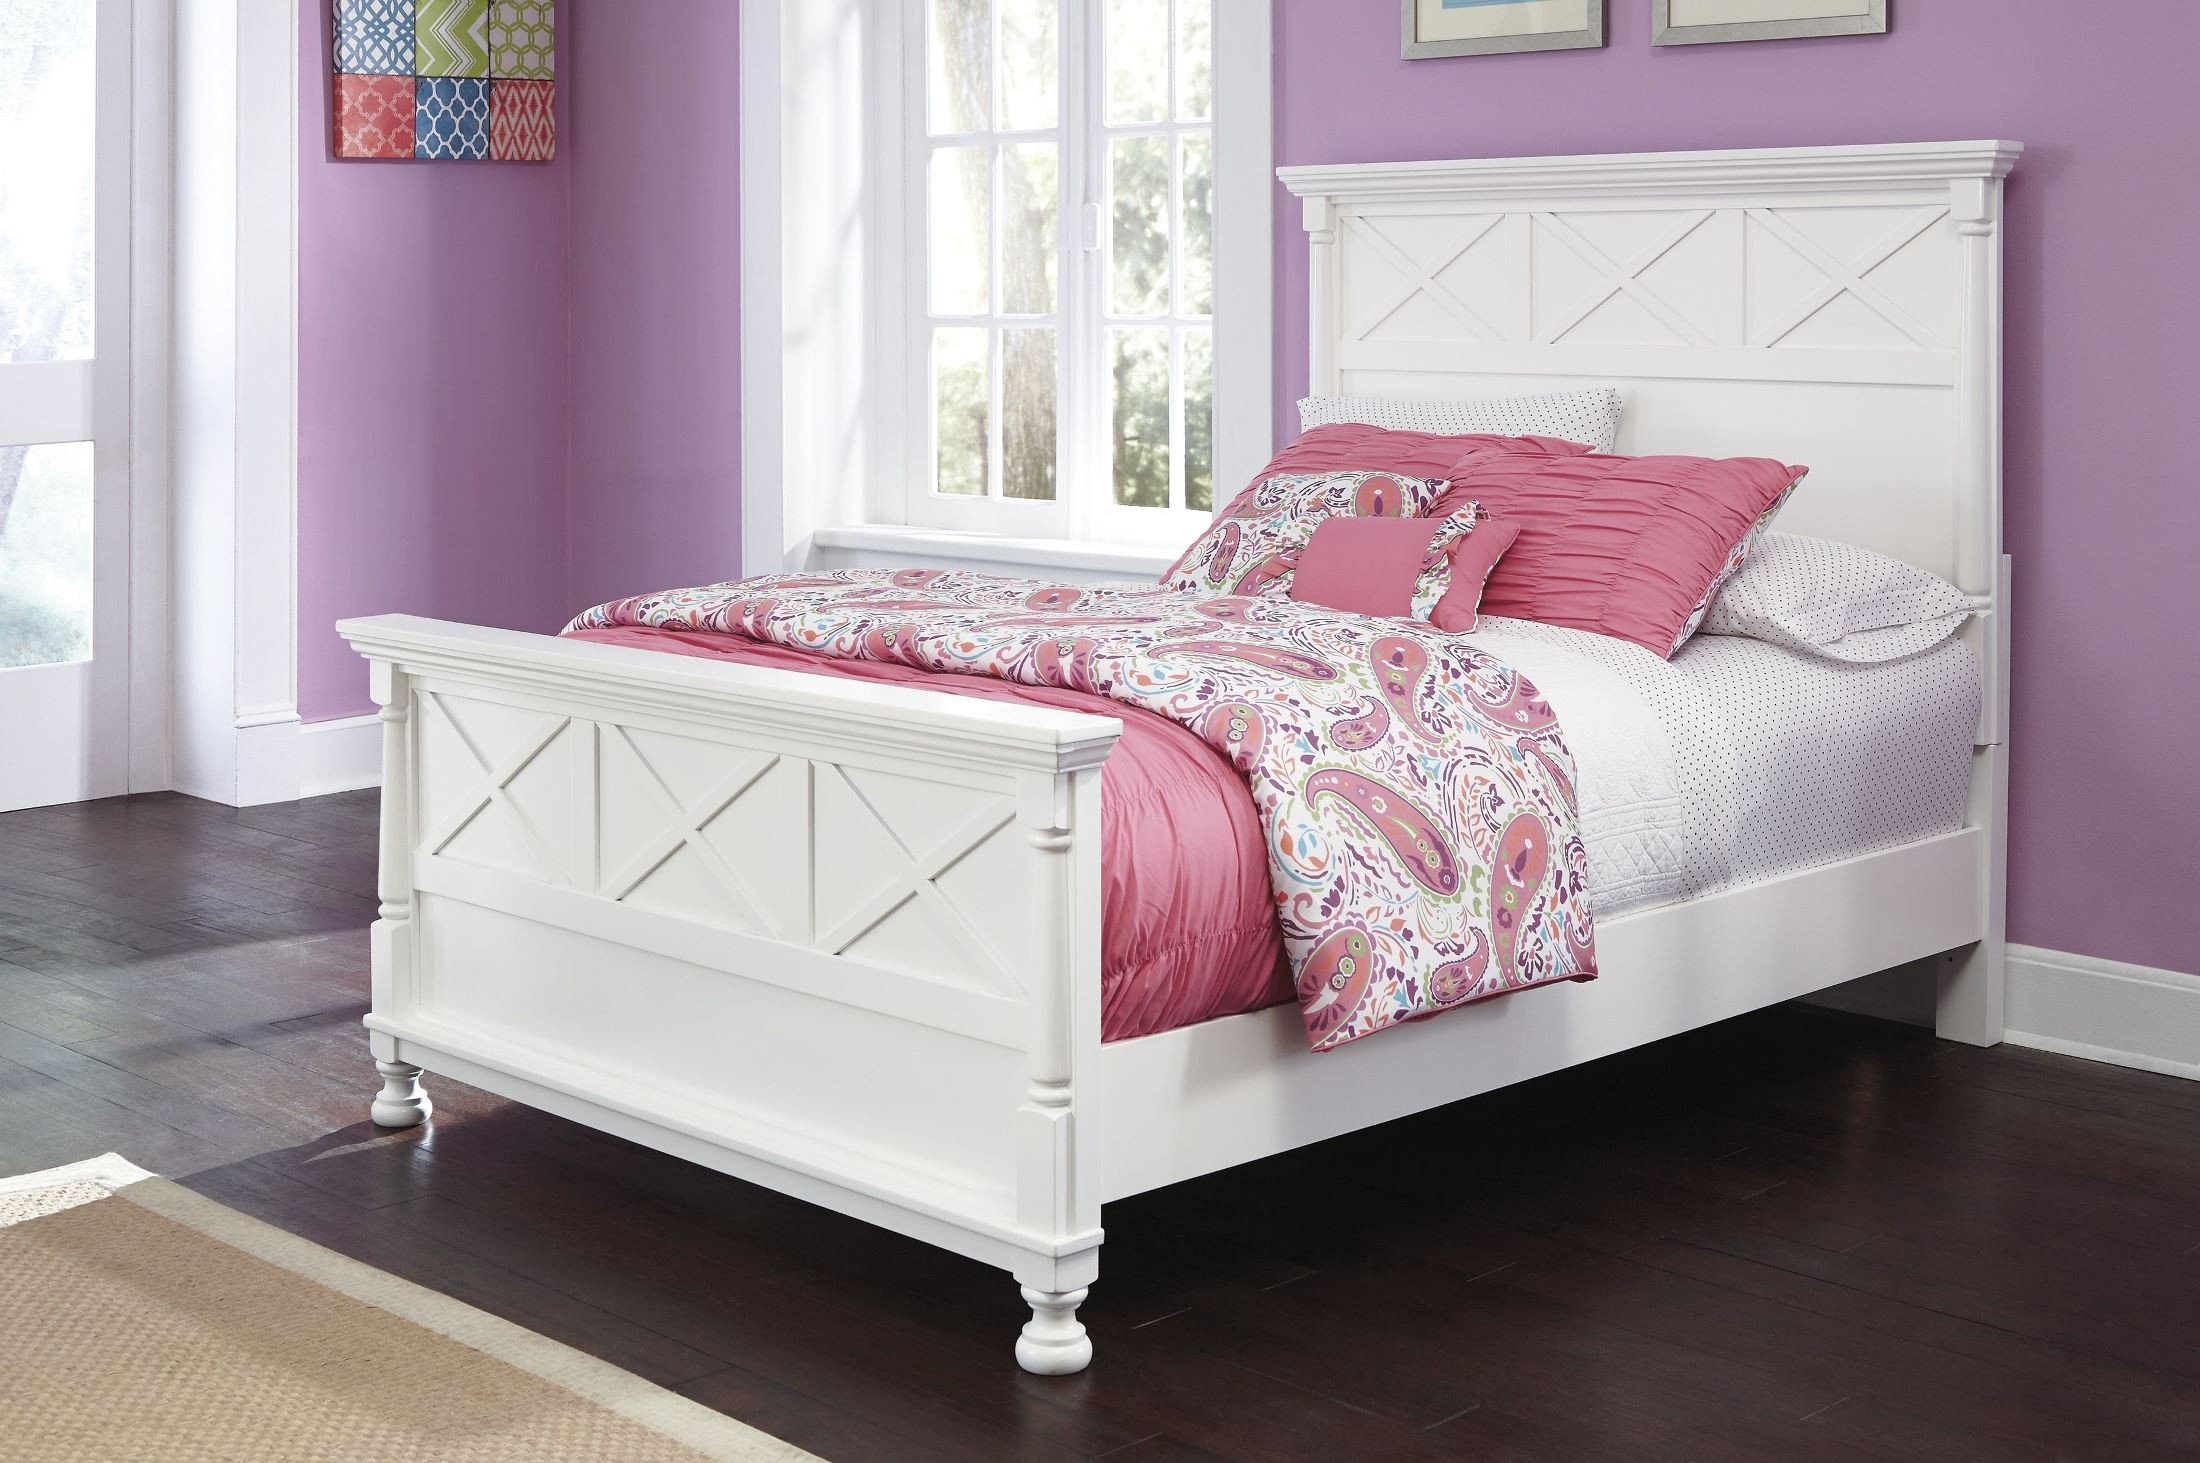 Kaslyn queen panel bed from ashley b502 57 54 96 for Panel bed mattress